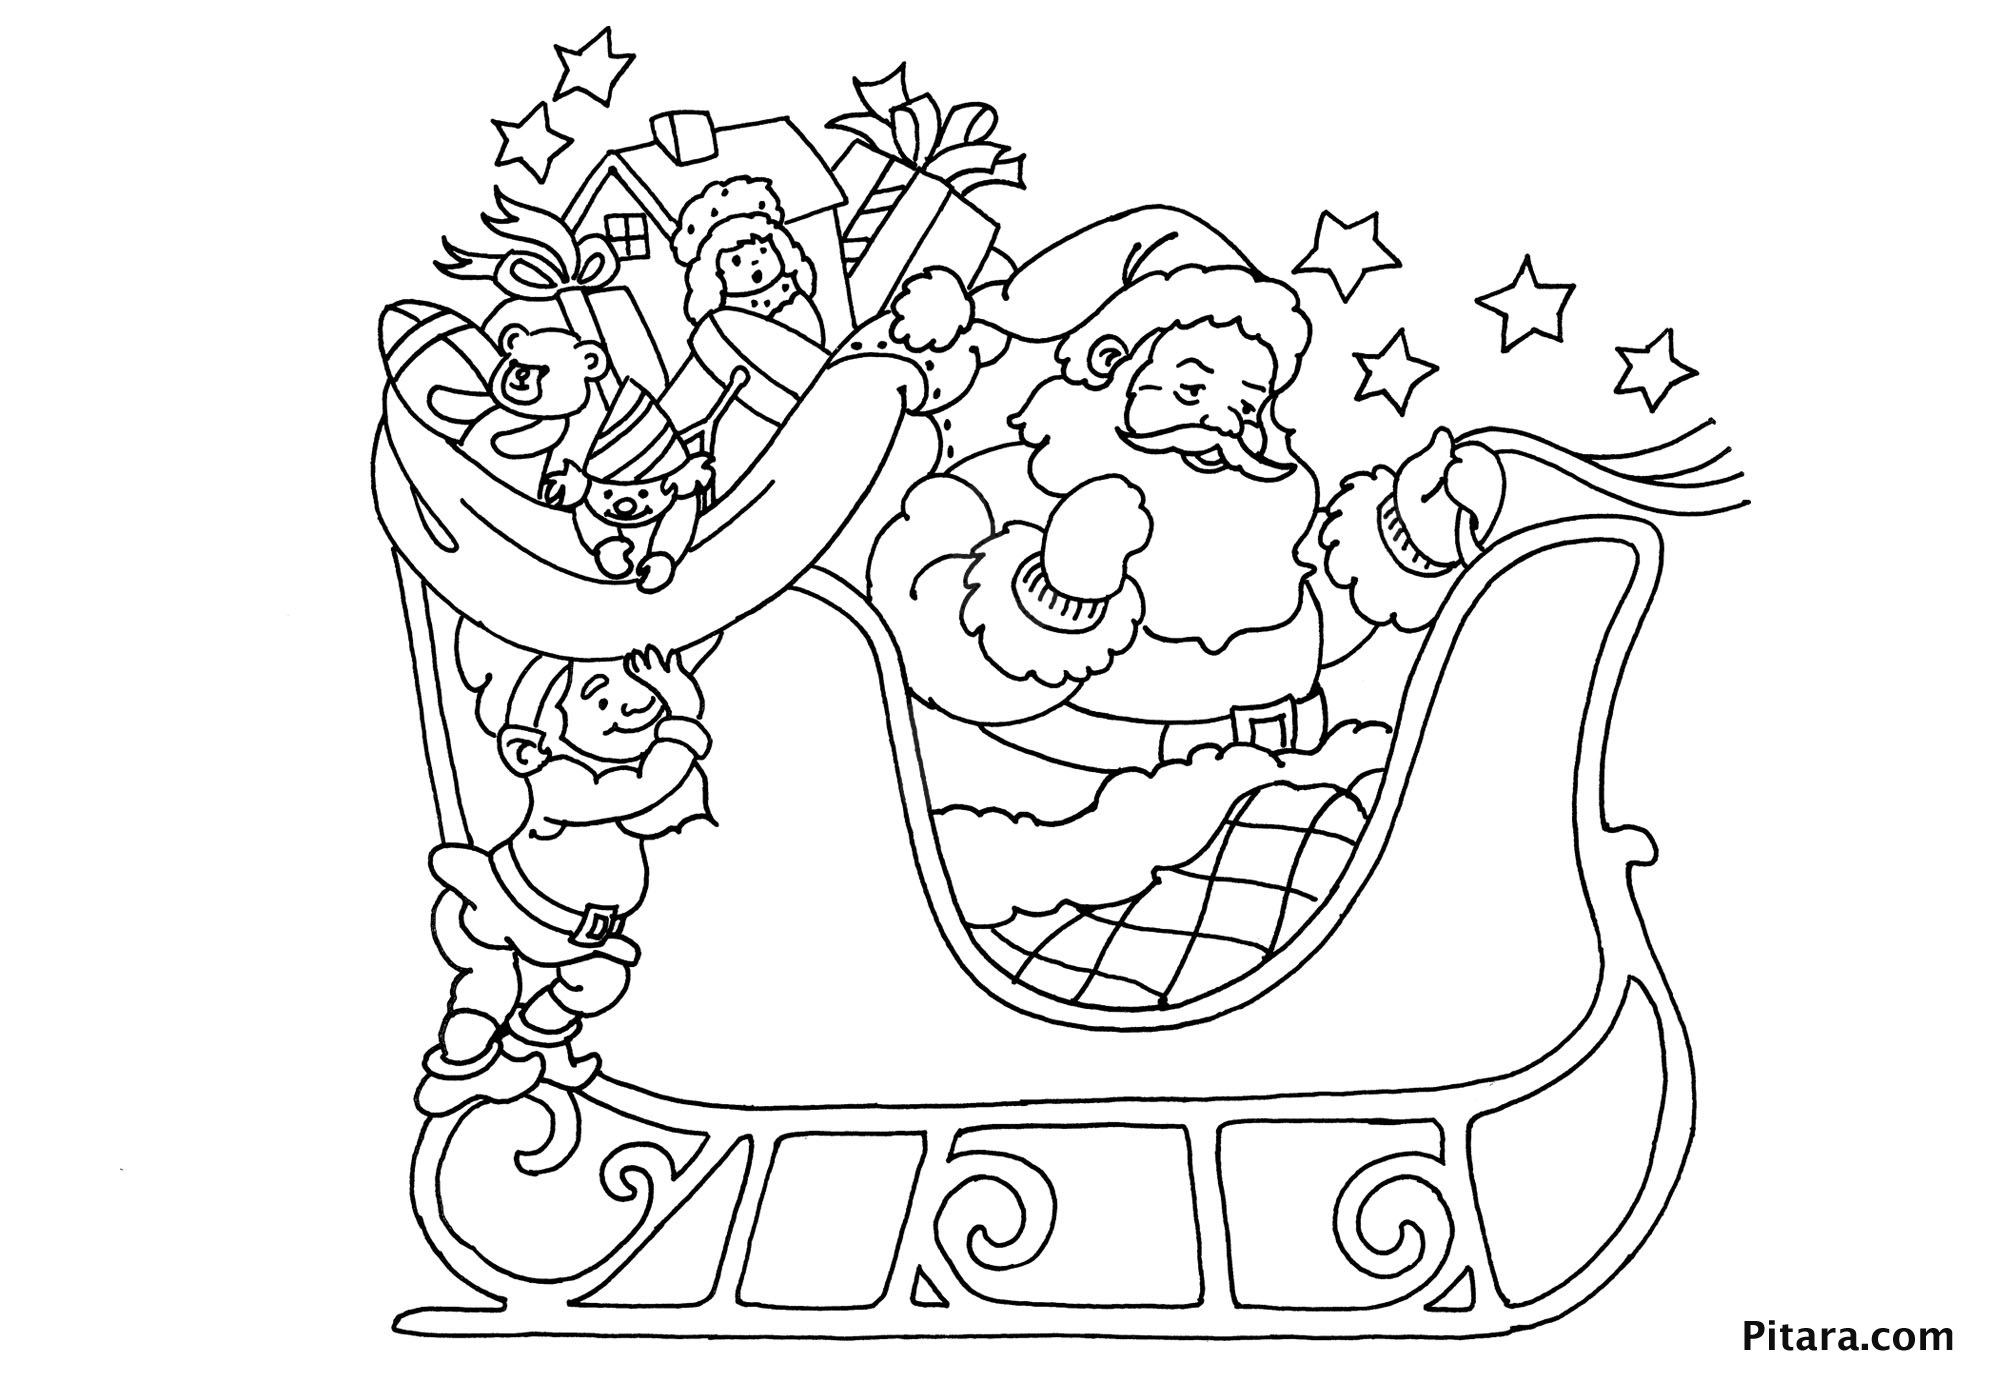 Christmas Coloring Pages for Kids - Pitara Kids Network